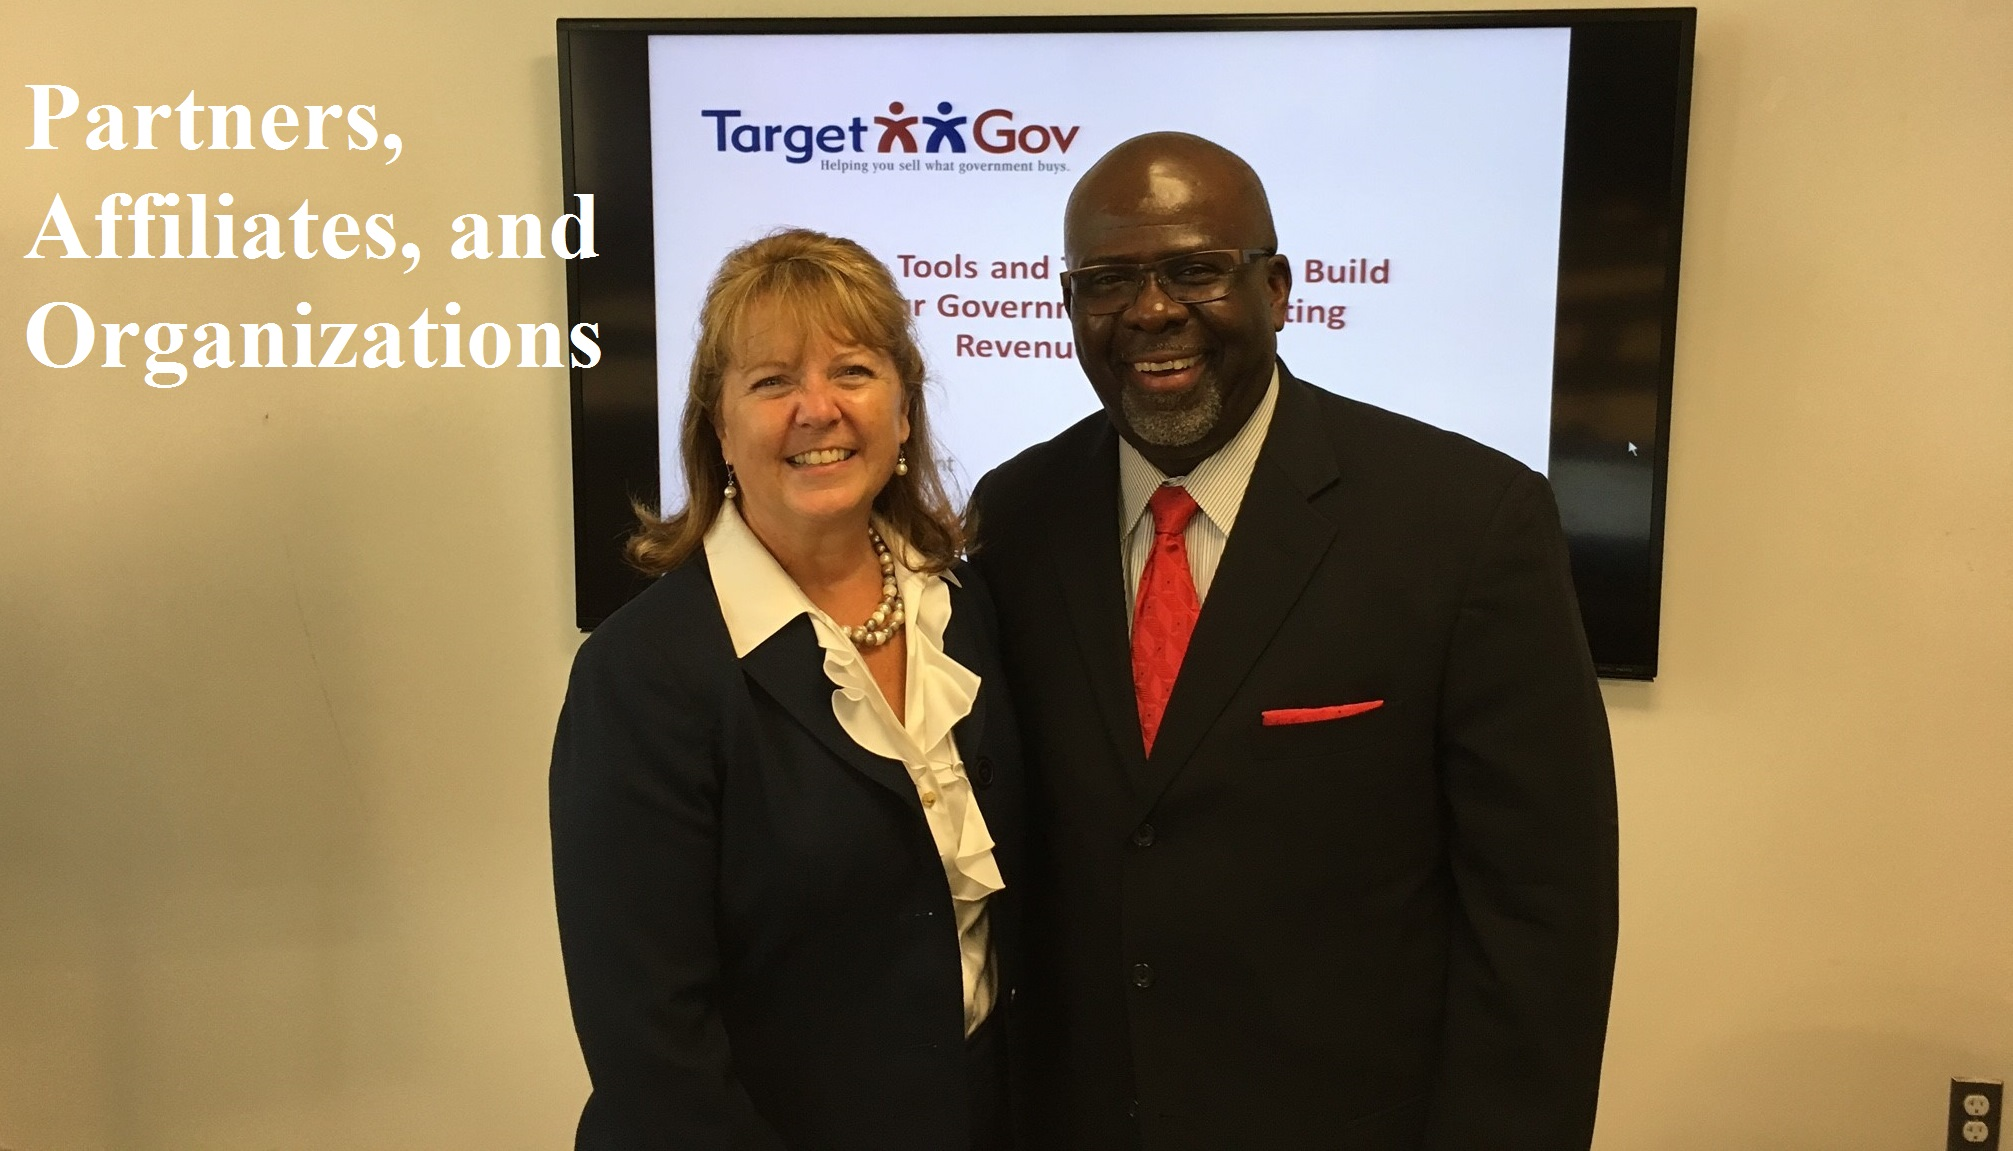 TargetGov Partners in Action